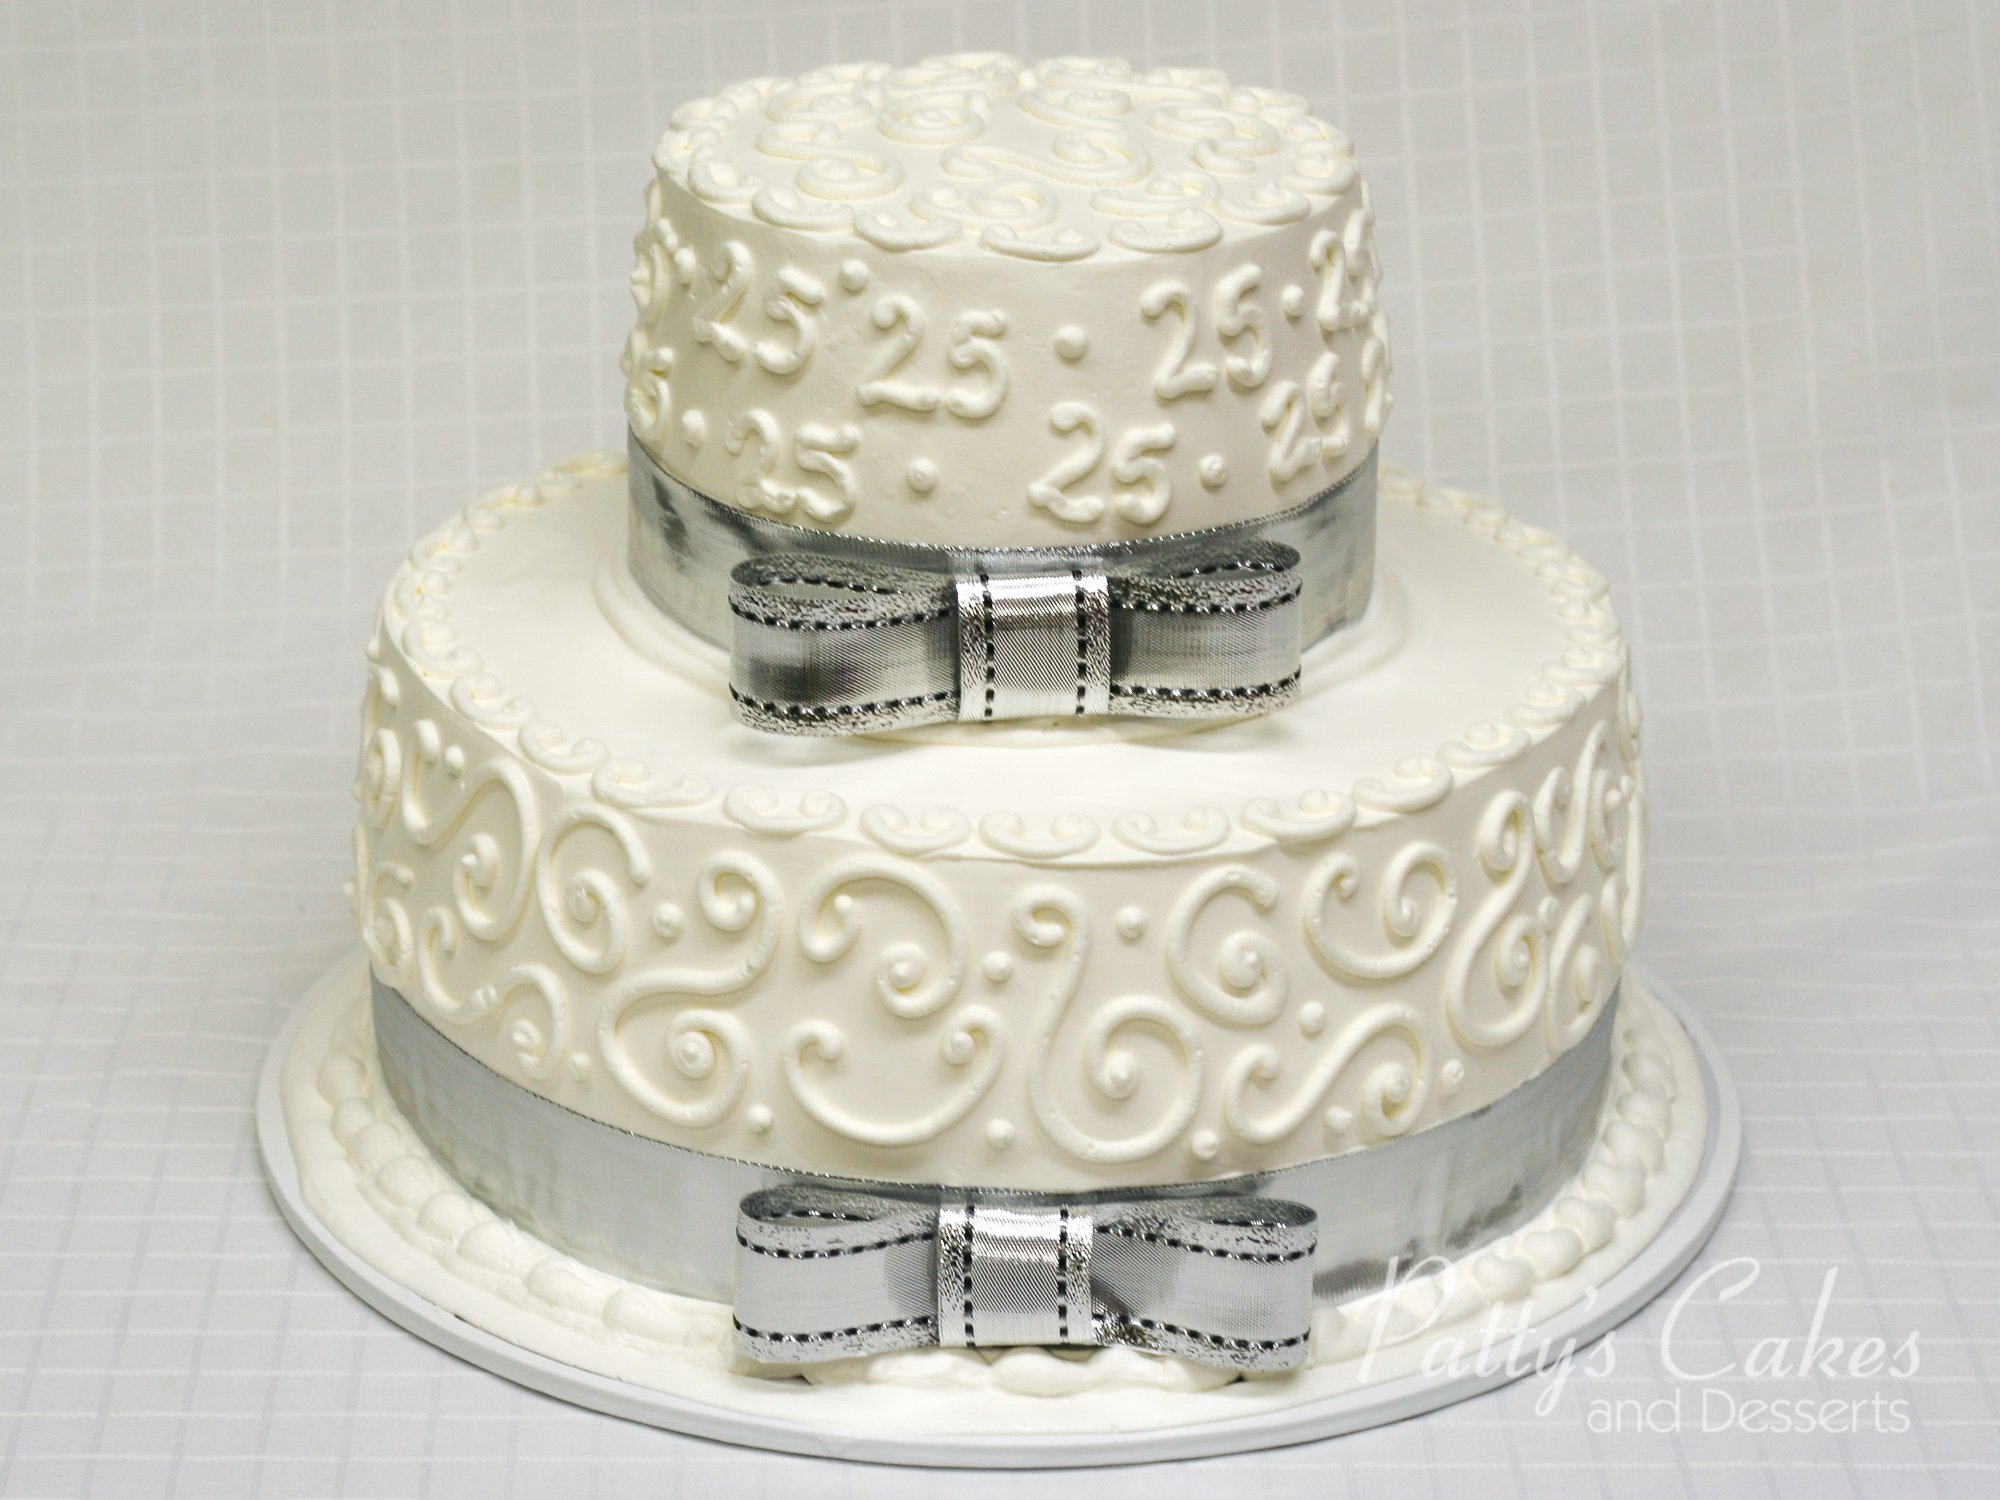 Magnificent Wedding Anniversary Cake Designs Image - The Wedding ...